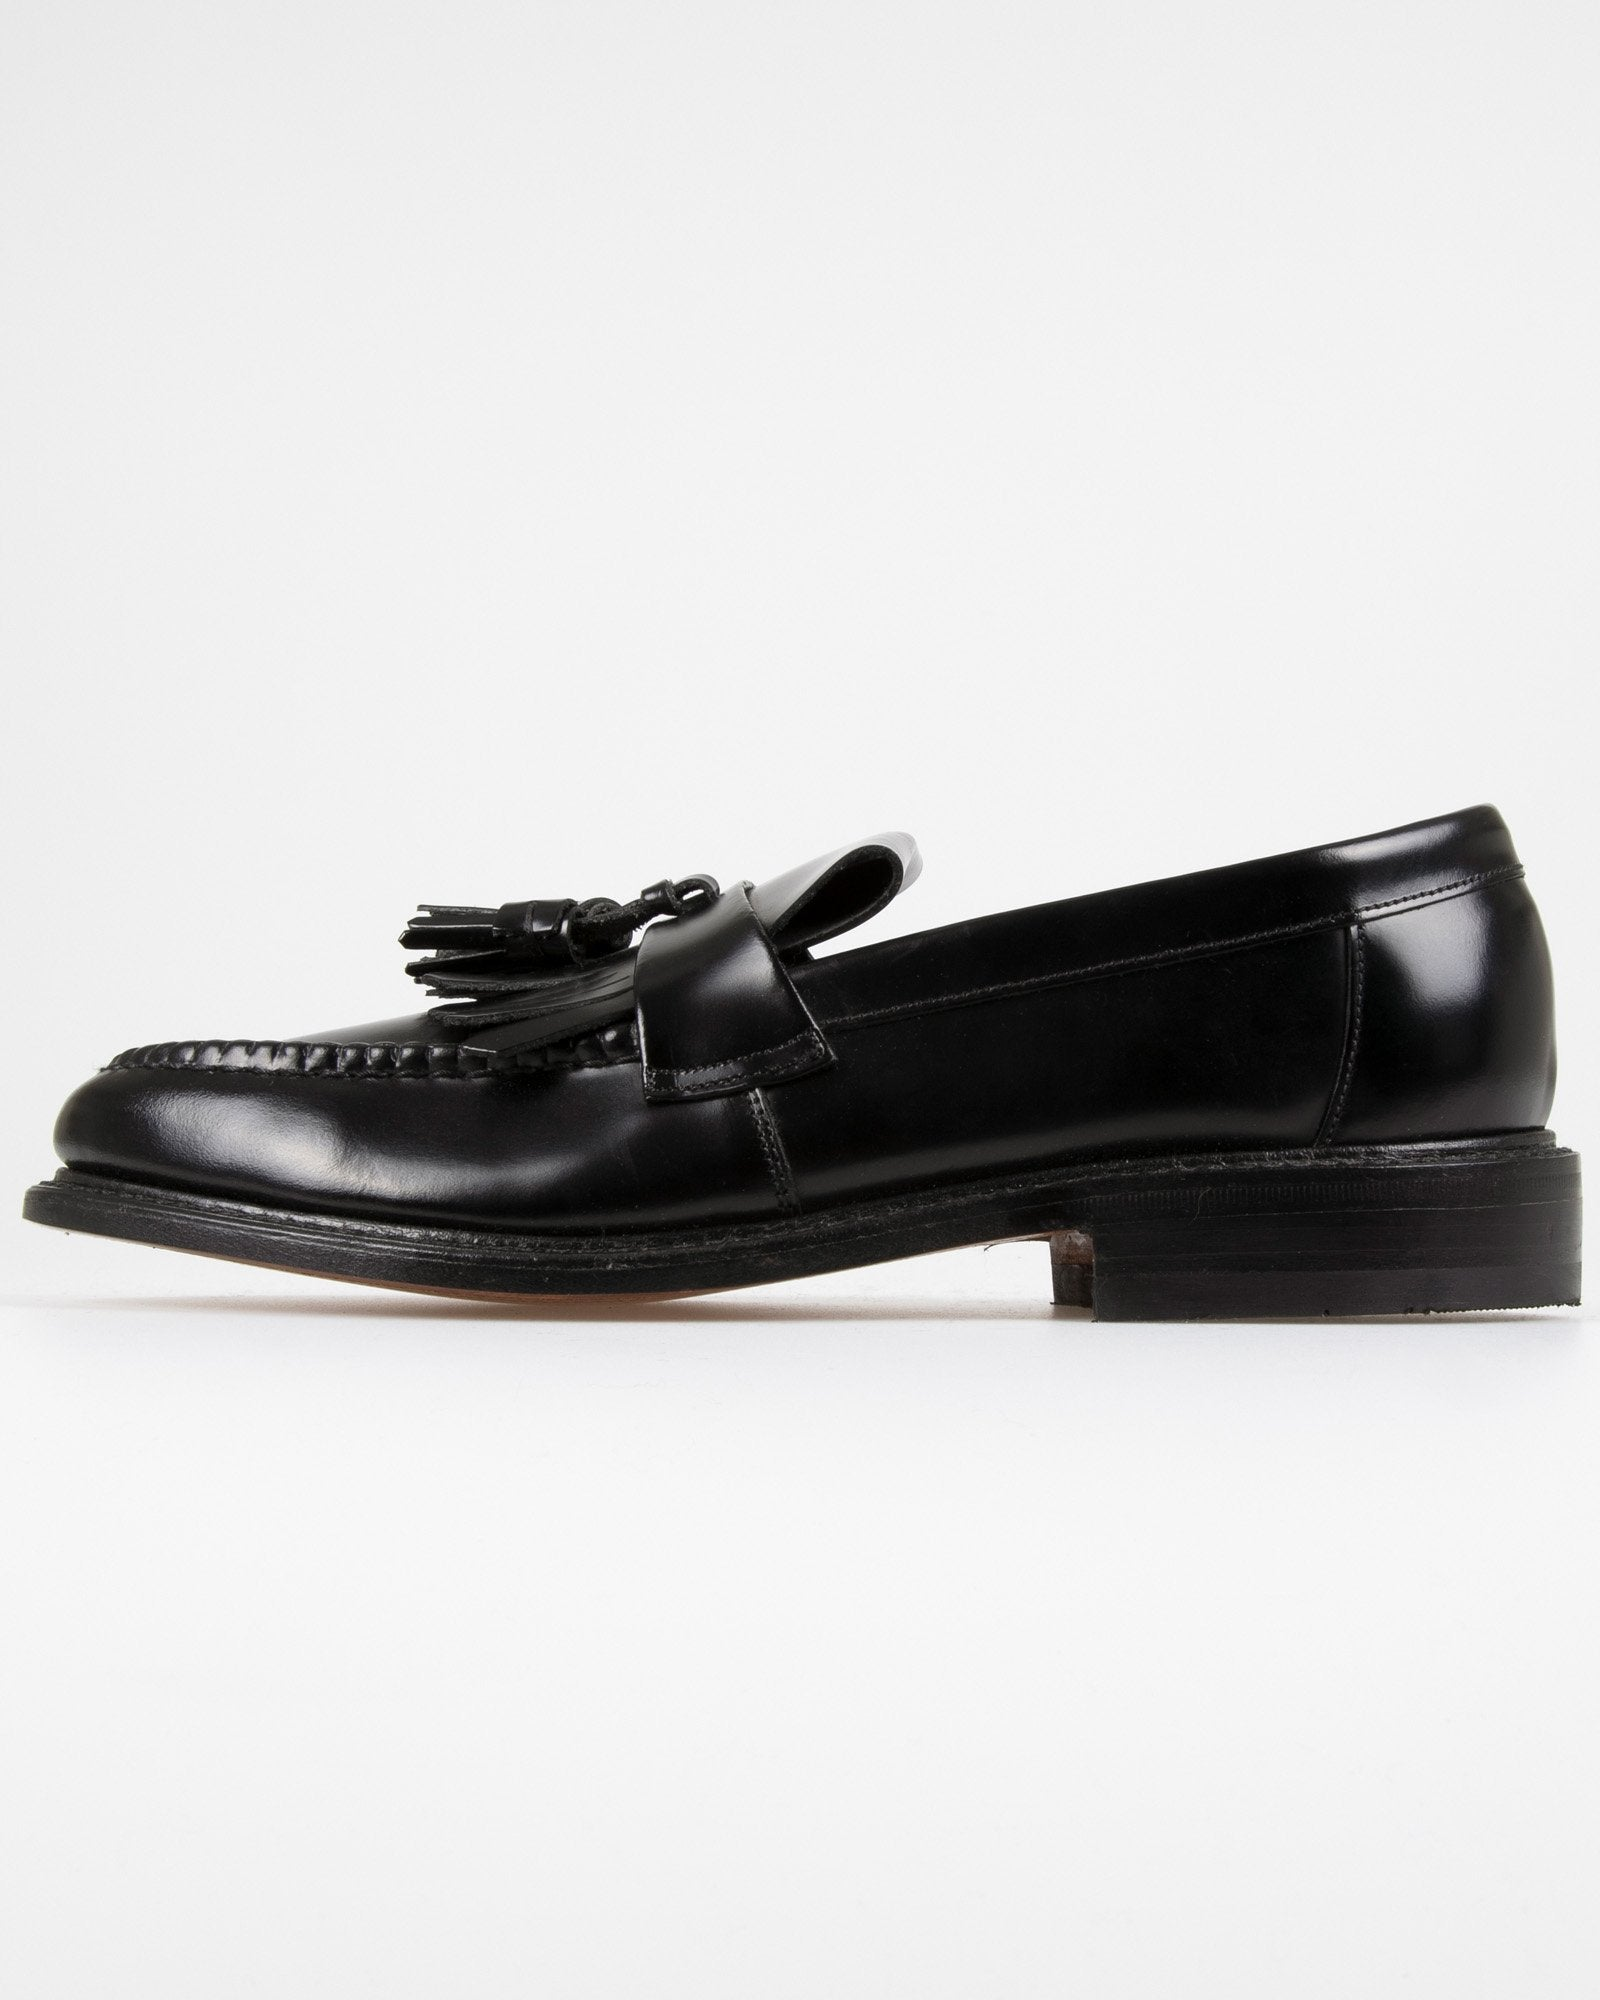 Loake Brighton Polished Tassel Loafer - Black UK 7 BRIB7 5050362046173 Loake Shoemakers Shoes Loake Brighton Polished Tassel Loafer - Black - Jeans and Street Fashion from Jeanstore